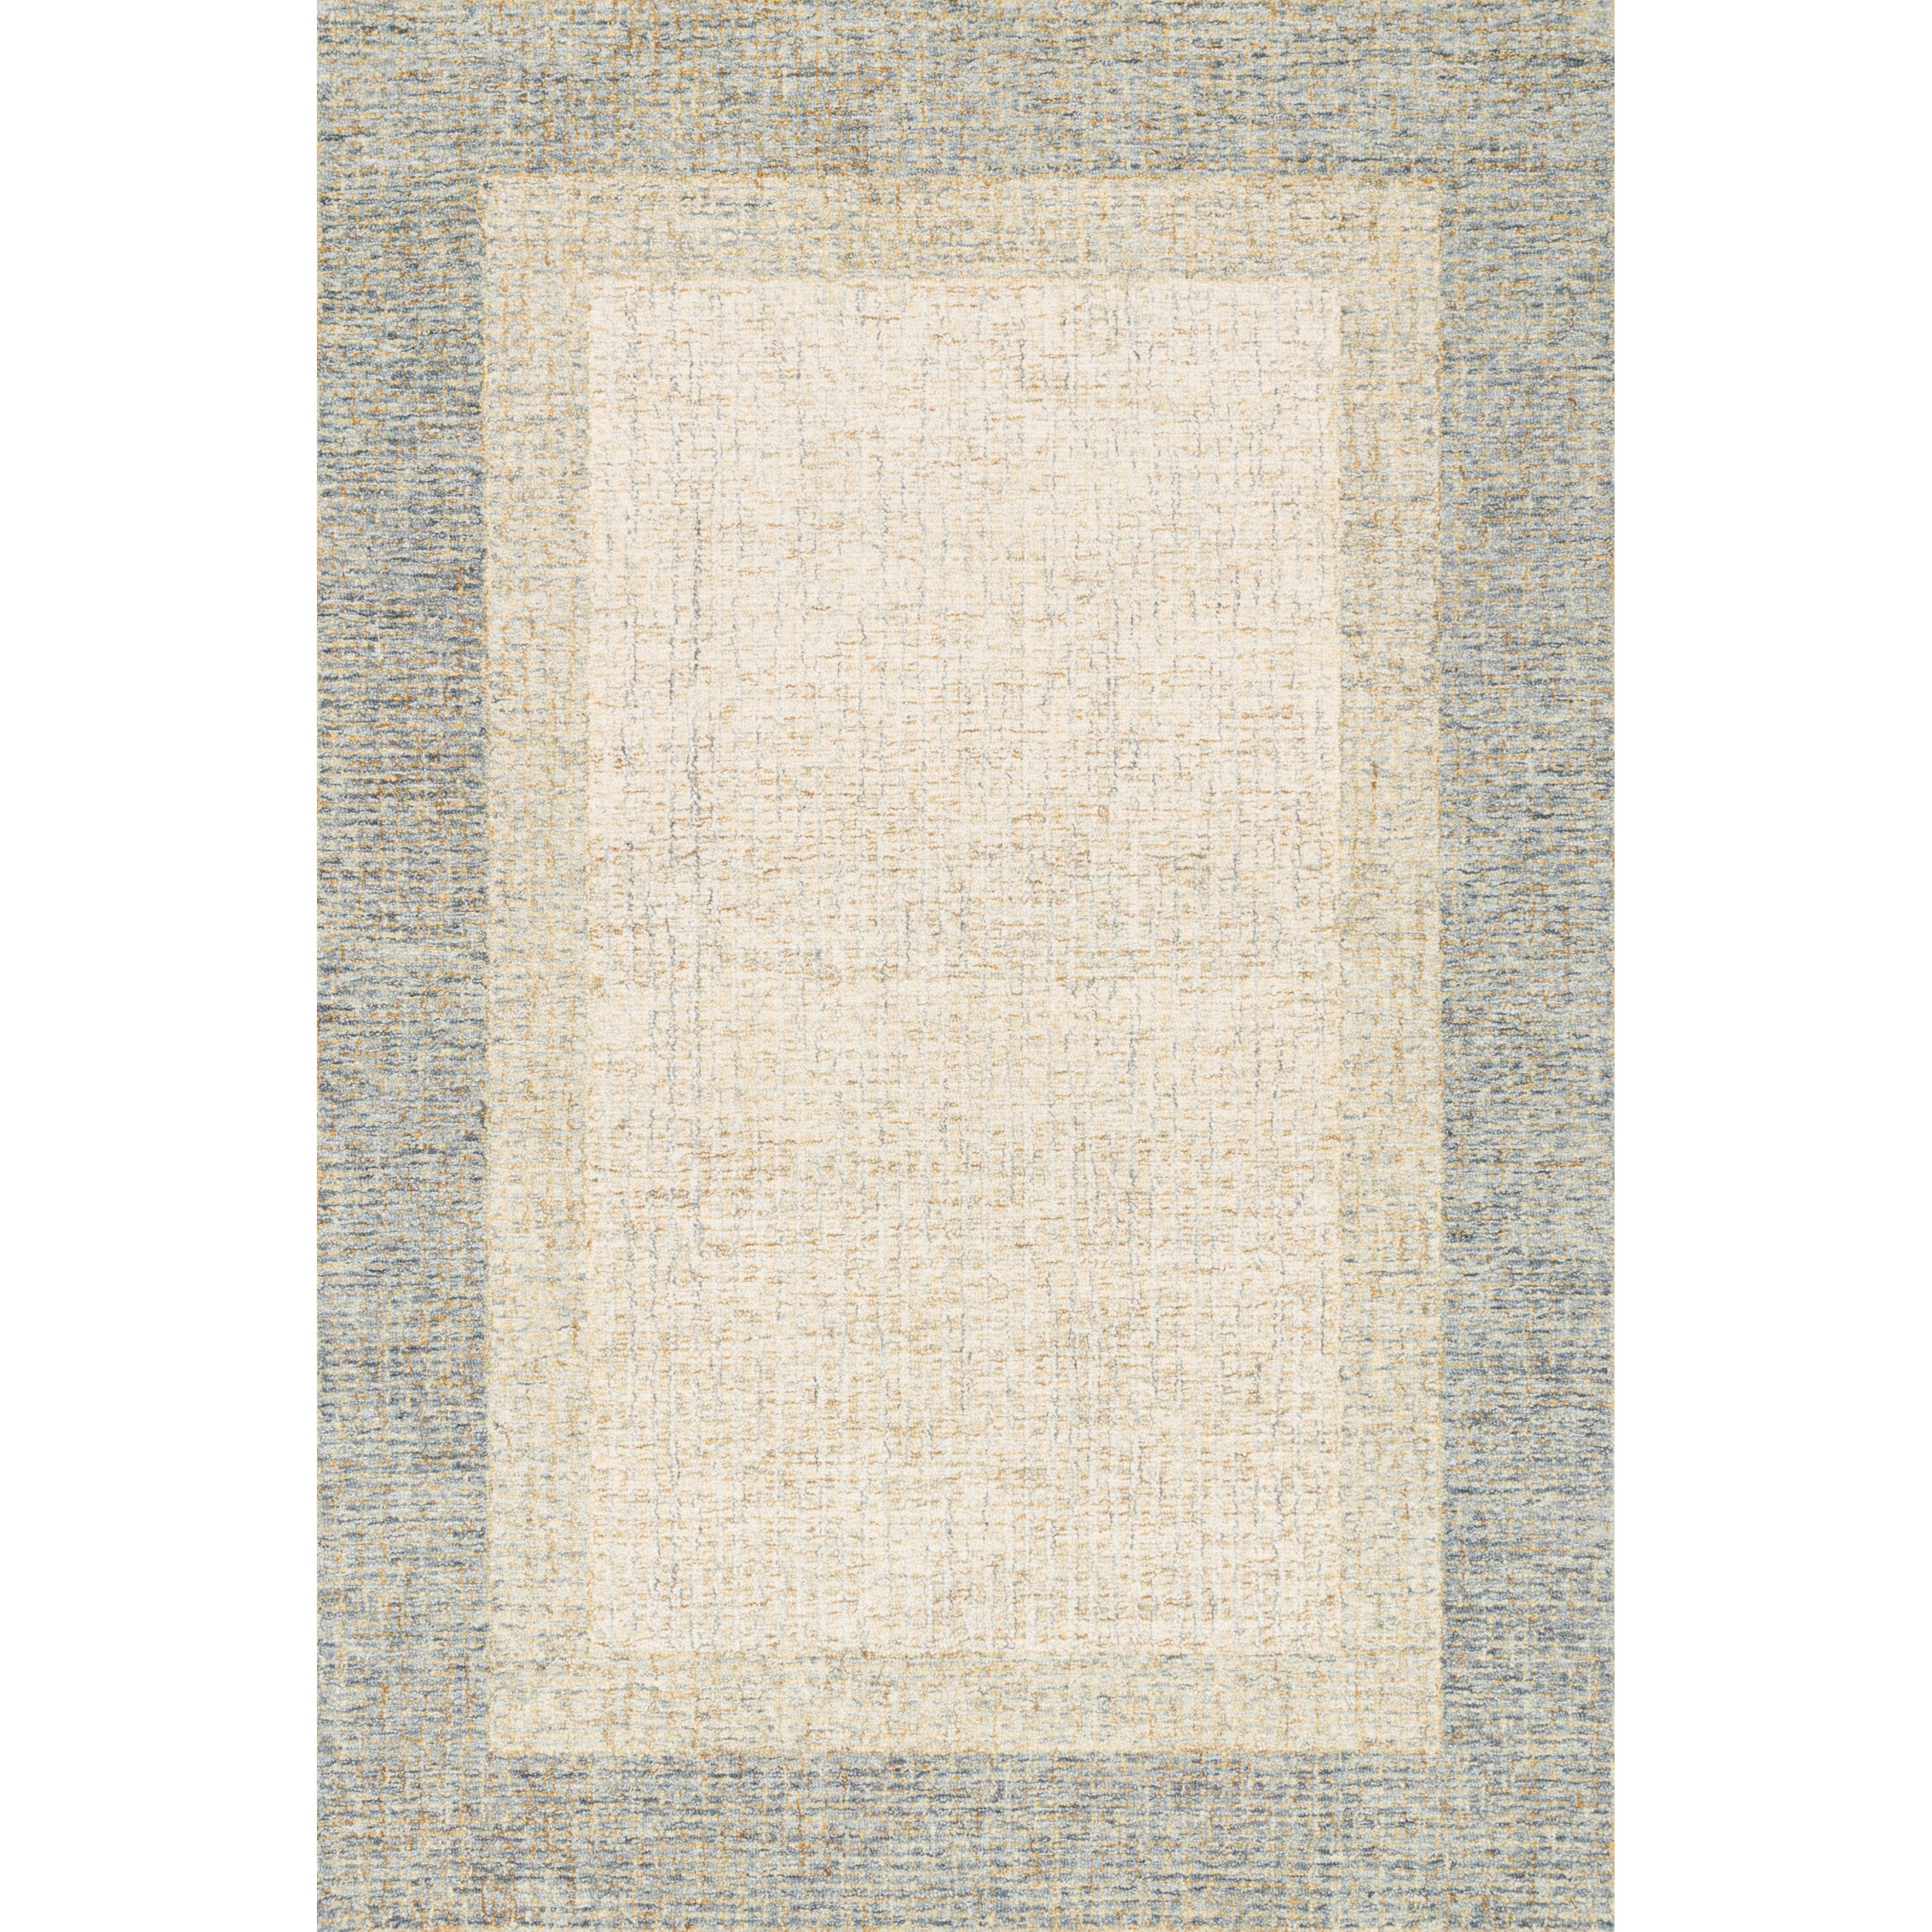 """Rosina 2'6"""" x 13' Sand Rug by Loloi Rugs at Sprintz Furniture"""